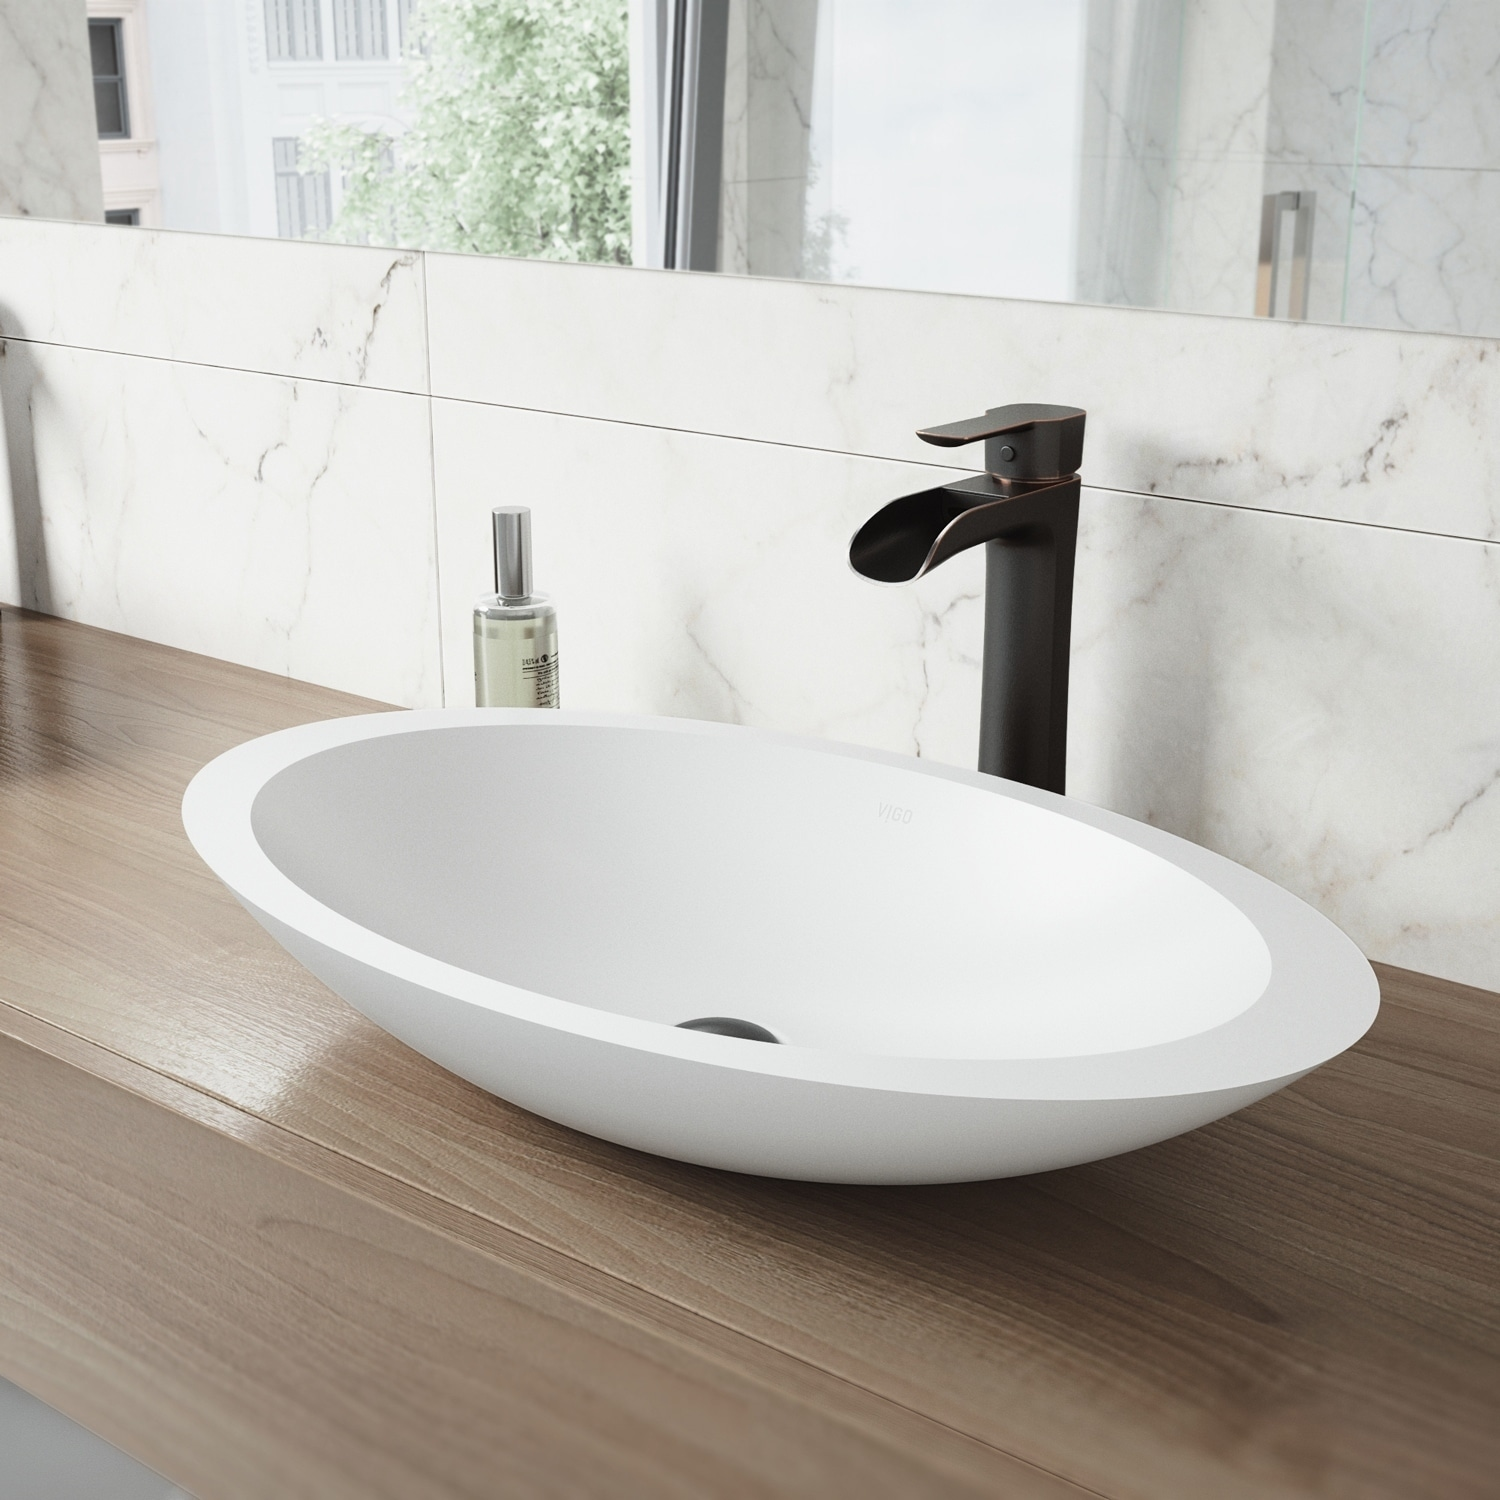 Buy Bathroom Faucets Online at Overstock.com | Our Best Faucets Deals